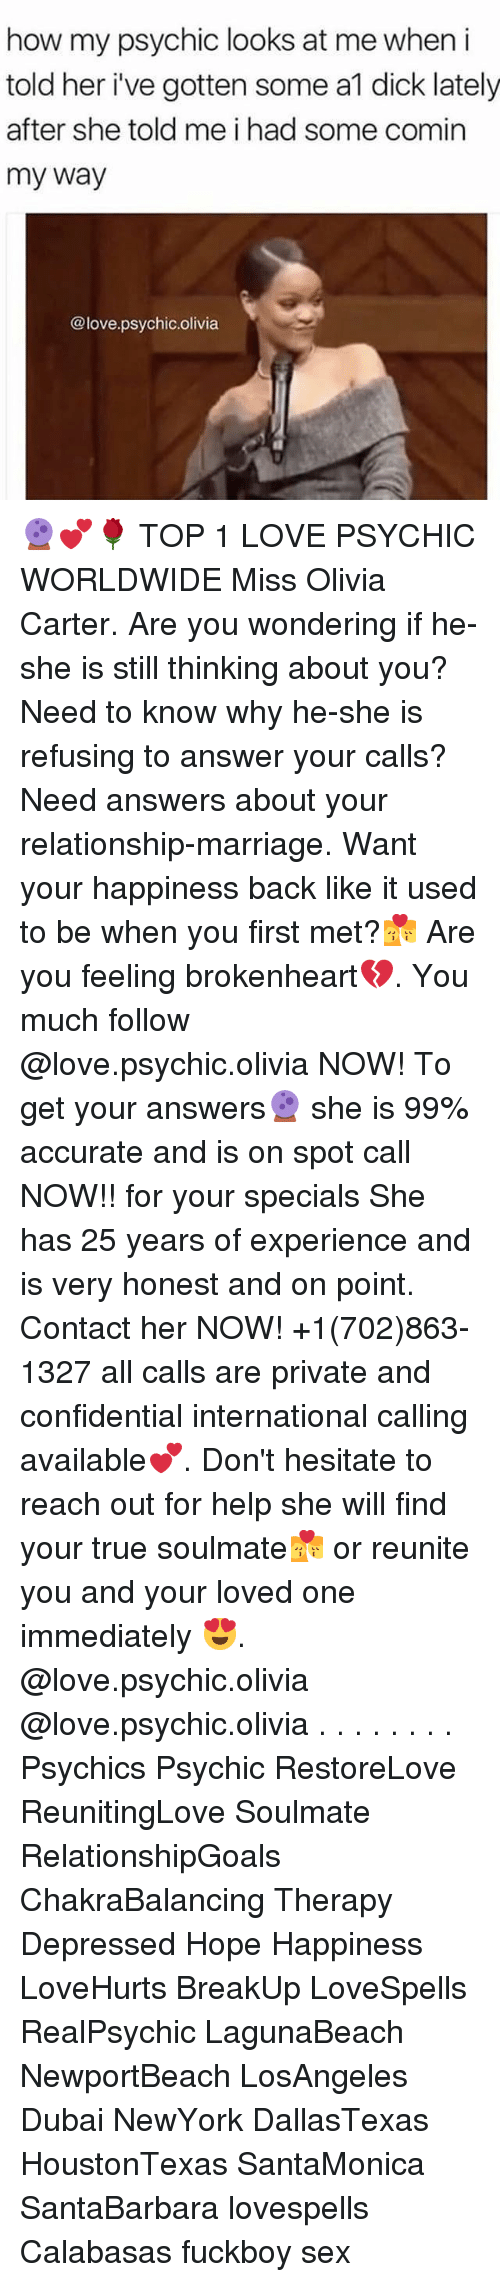 brokenheart: how my psychic looks at me when i  told her i've gotten some a1 dick lately  after she told me i had some comin  my way  @love.psychic.olivia 🔮💕🌹 TOP 1 LOVE PSYCHIC WORLDWIDE Miss Olivia Carter. Are you wondering if he-she is still thinking about you? Need to know why he-she is refusing to answer your calls? Need answers about your relationship-marriage. Want your happiness back like it used to be when you first met?💏 Are you feeling brokenheart💔. You much follow @love.psychic.olivia NOW! To get your answers🔮 she is 99% accurate and is on spot call NOW!! for your specials She has 25 years of experience and is very honest and on point. Contact her NOW! +1(702)863-1327 all calls are private and confidential international calling available💕. Don't hesitate to reach out for help she will find your true soulmate💏 or reunite you and your loved one immediately 😍. @love.psychic.olivia @love.psychic.olivia . . . . . . . . Psychics Psychic RestoreLove ReunitingLove Soulmate RelationshipGoals ChakraBalancing Therapy Depressed Hope Happiness LoveHurts BreakUp LoveSpells RealPsychic LagunaBeach NewportBeach LosAngeles Dubai NewYork DallasTexas HoustonTexas SantaMonica SantaBarbara lovespells Calabasas fuckboy sex